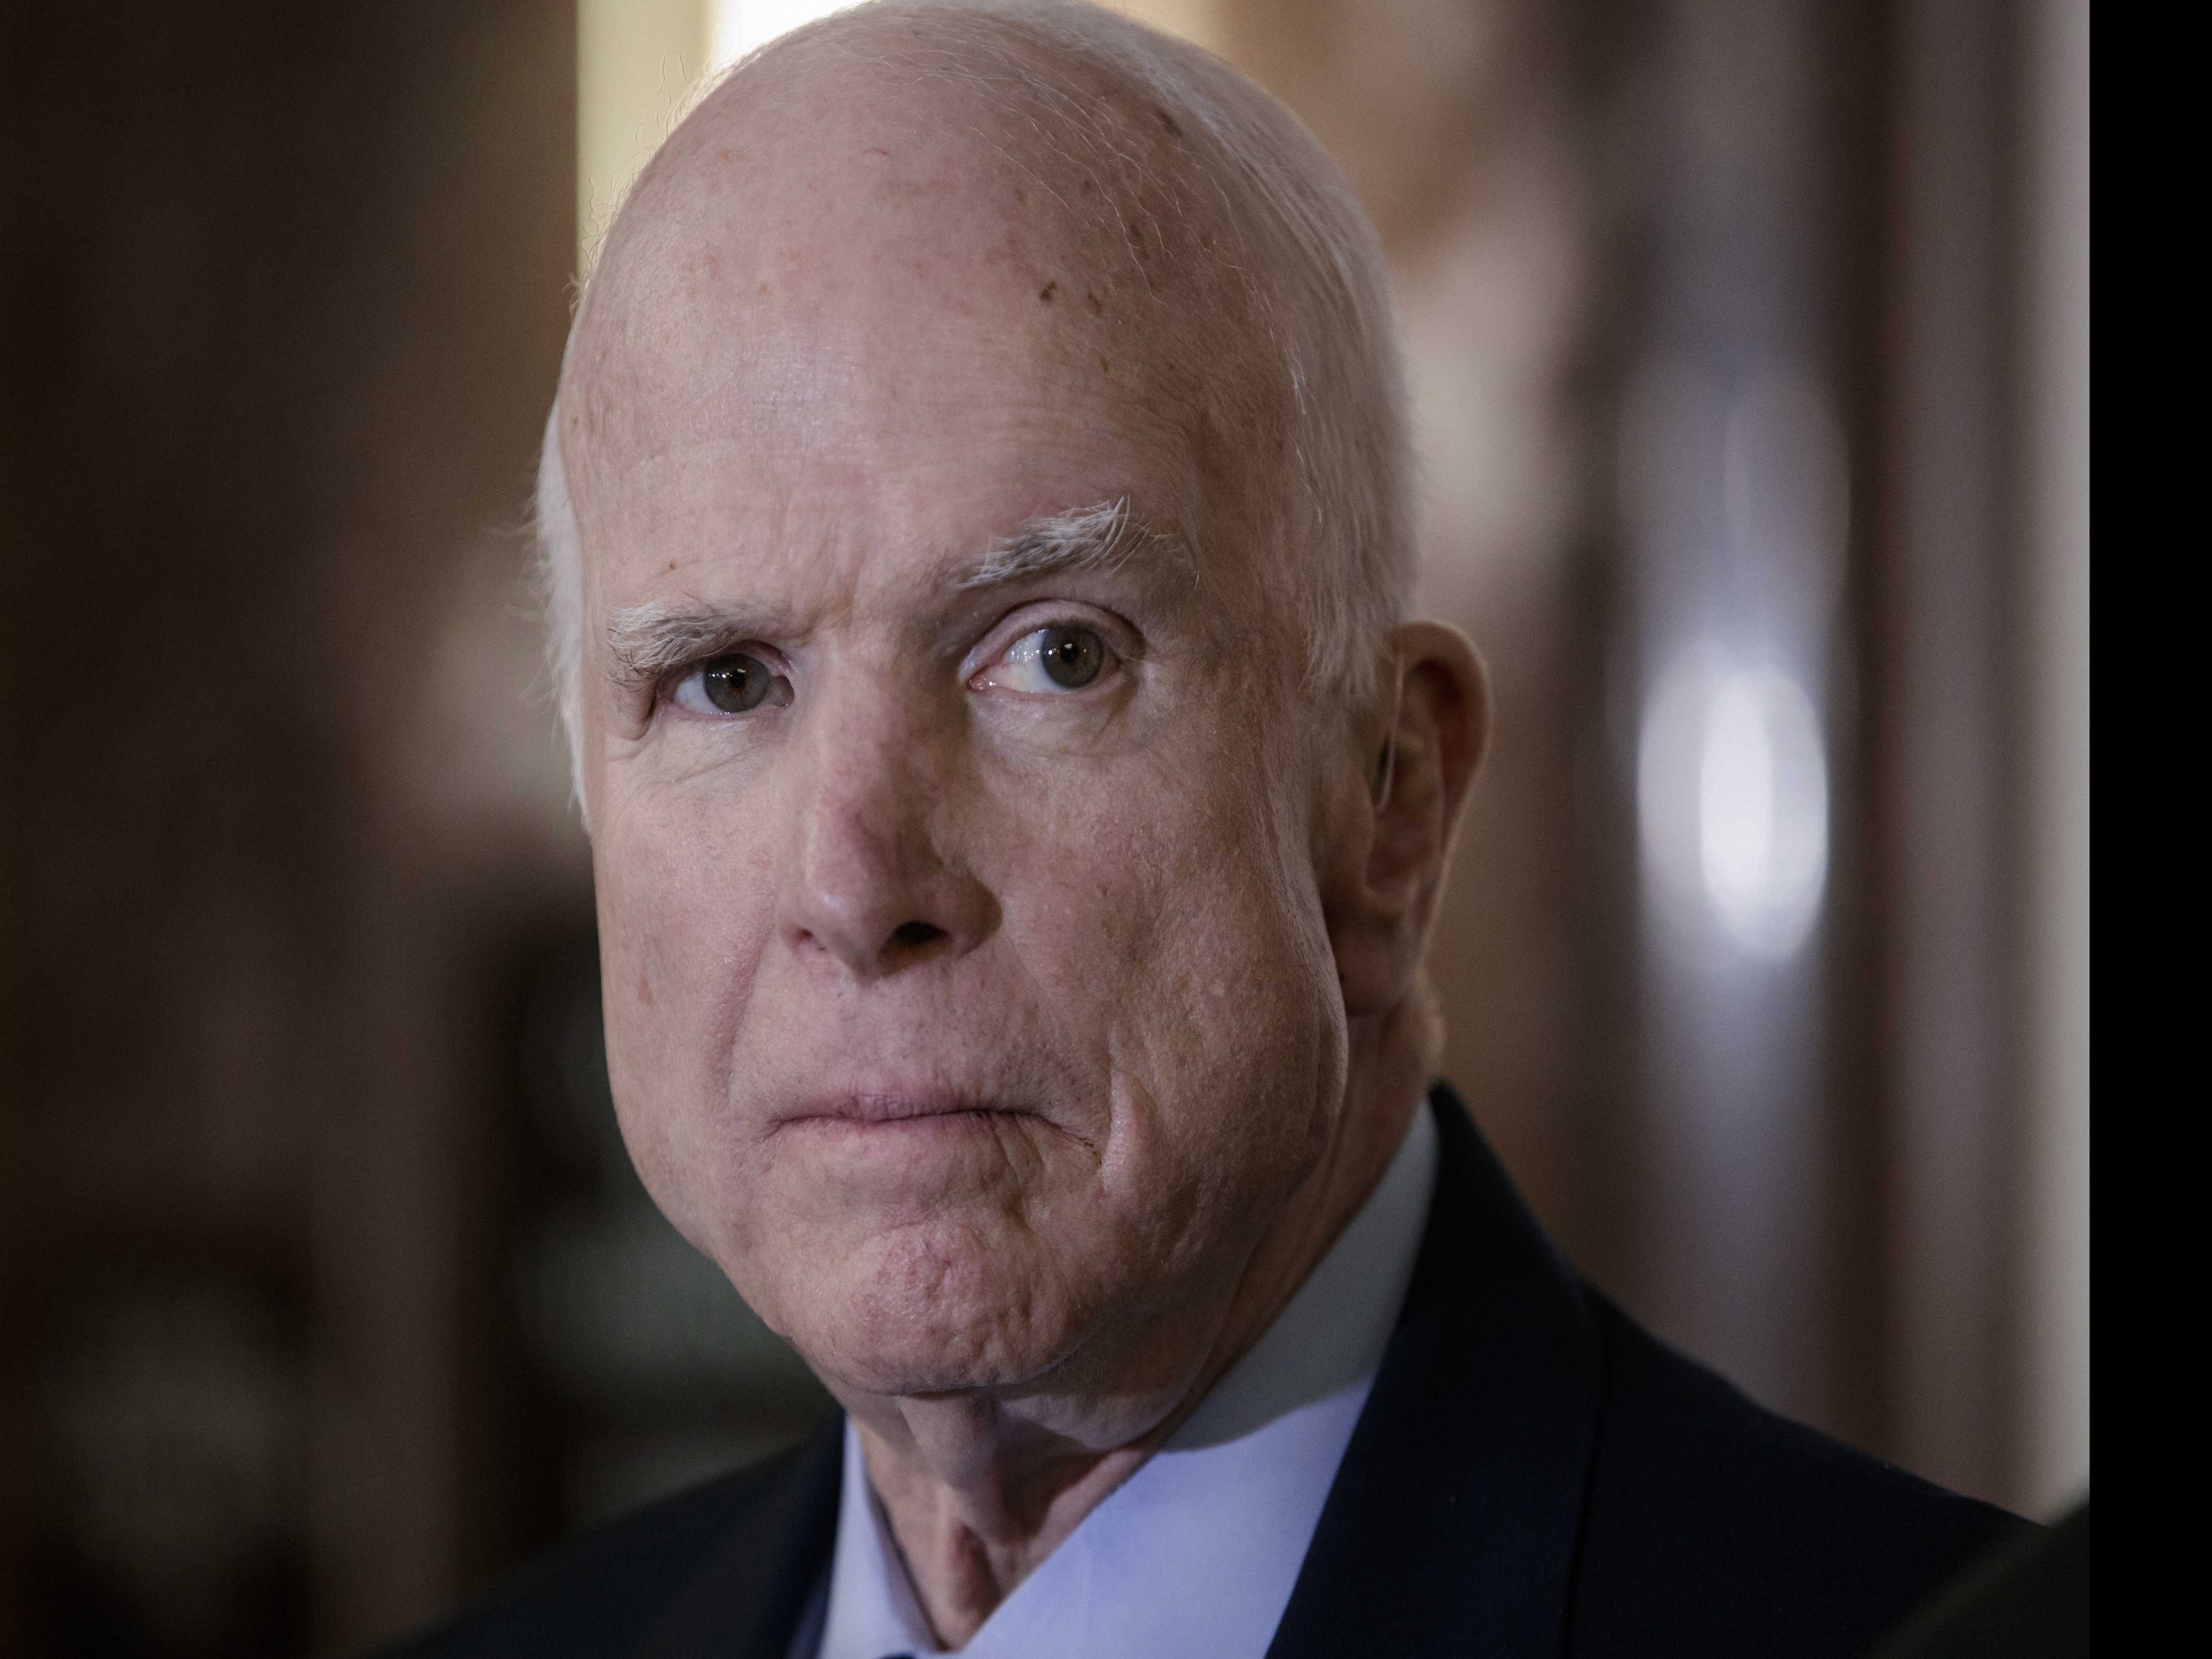 Despite Cancer, McCain's Maverick Ways Press on in Tweets